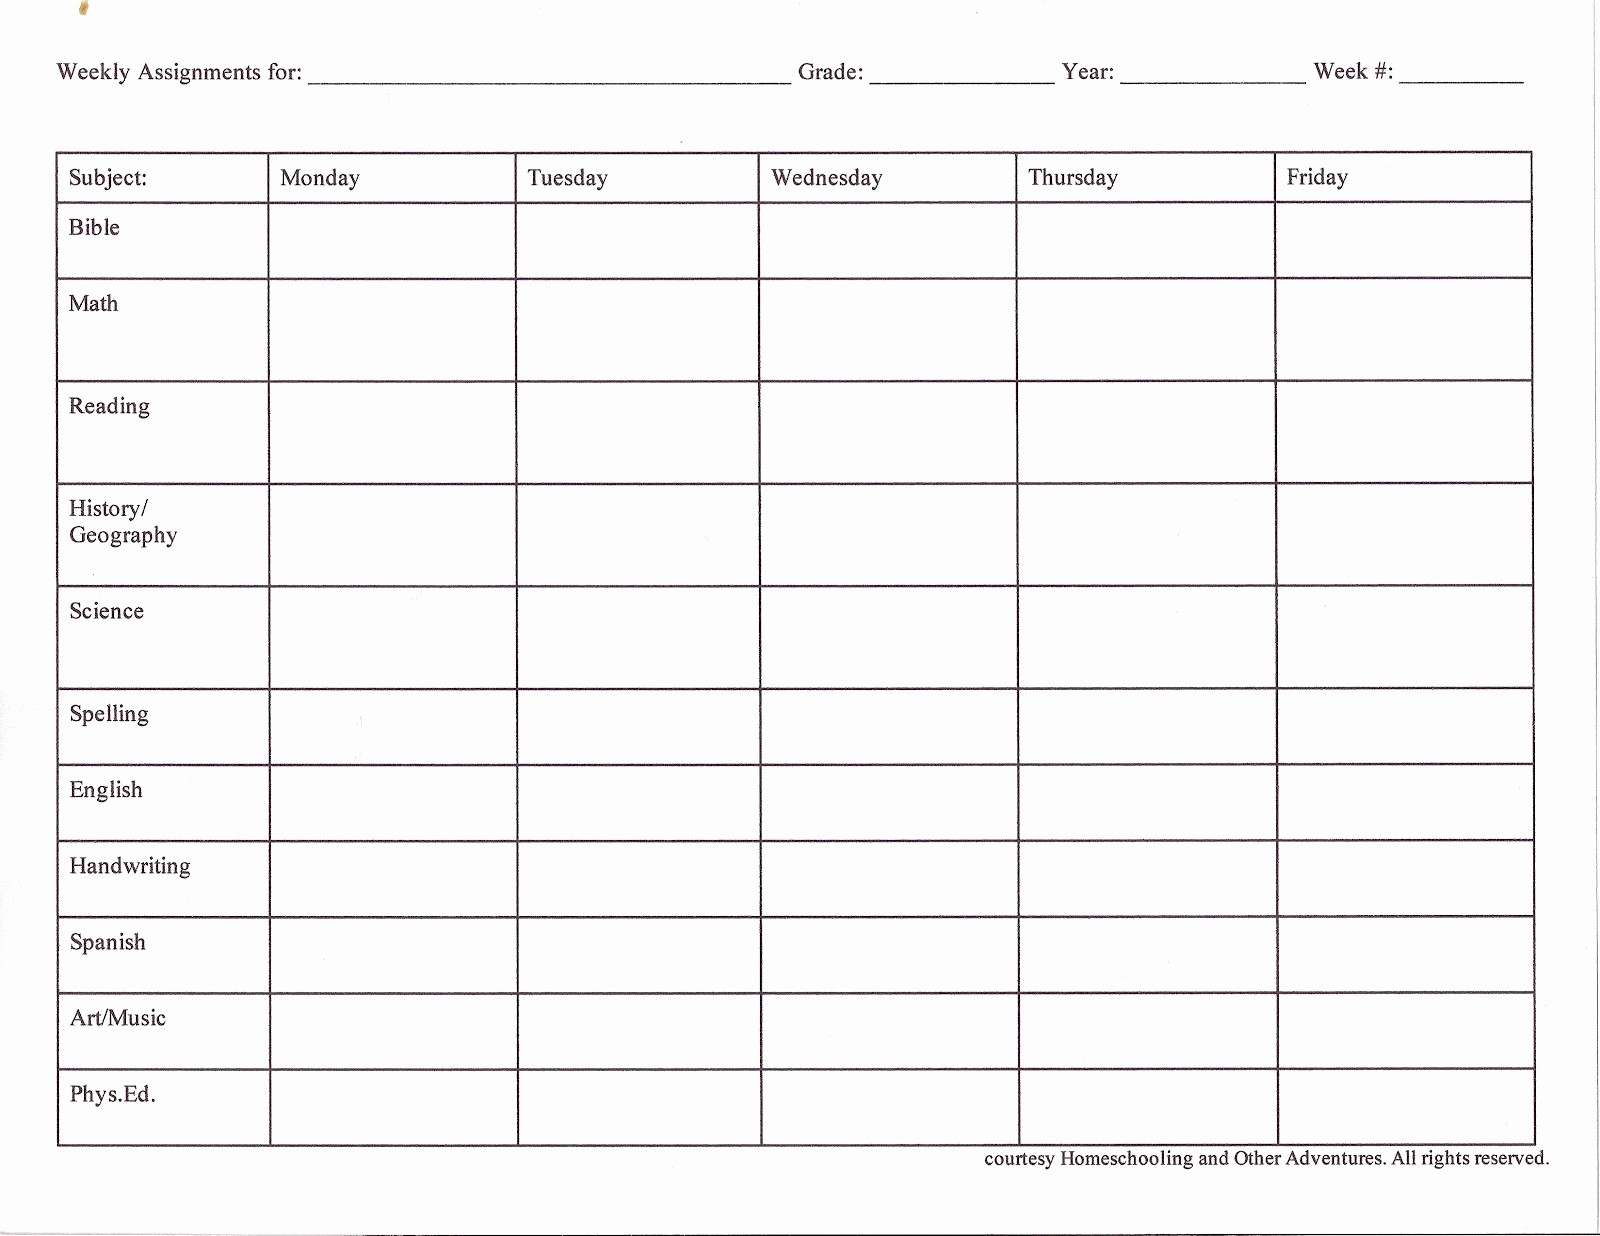 Weekly Homework assignment Sheet Template Beautiful Homeschooling and Other Adventures Planning Xt Steps